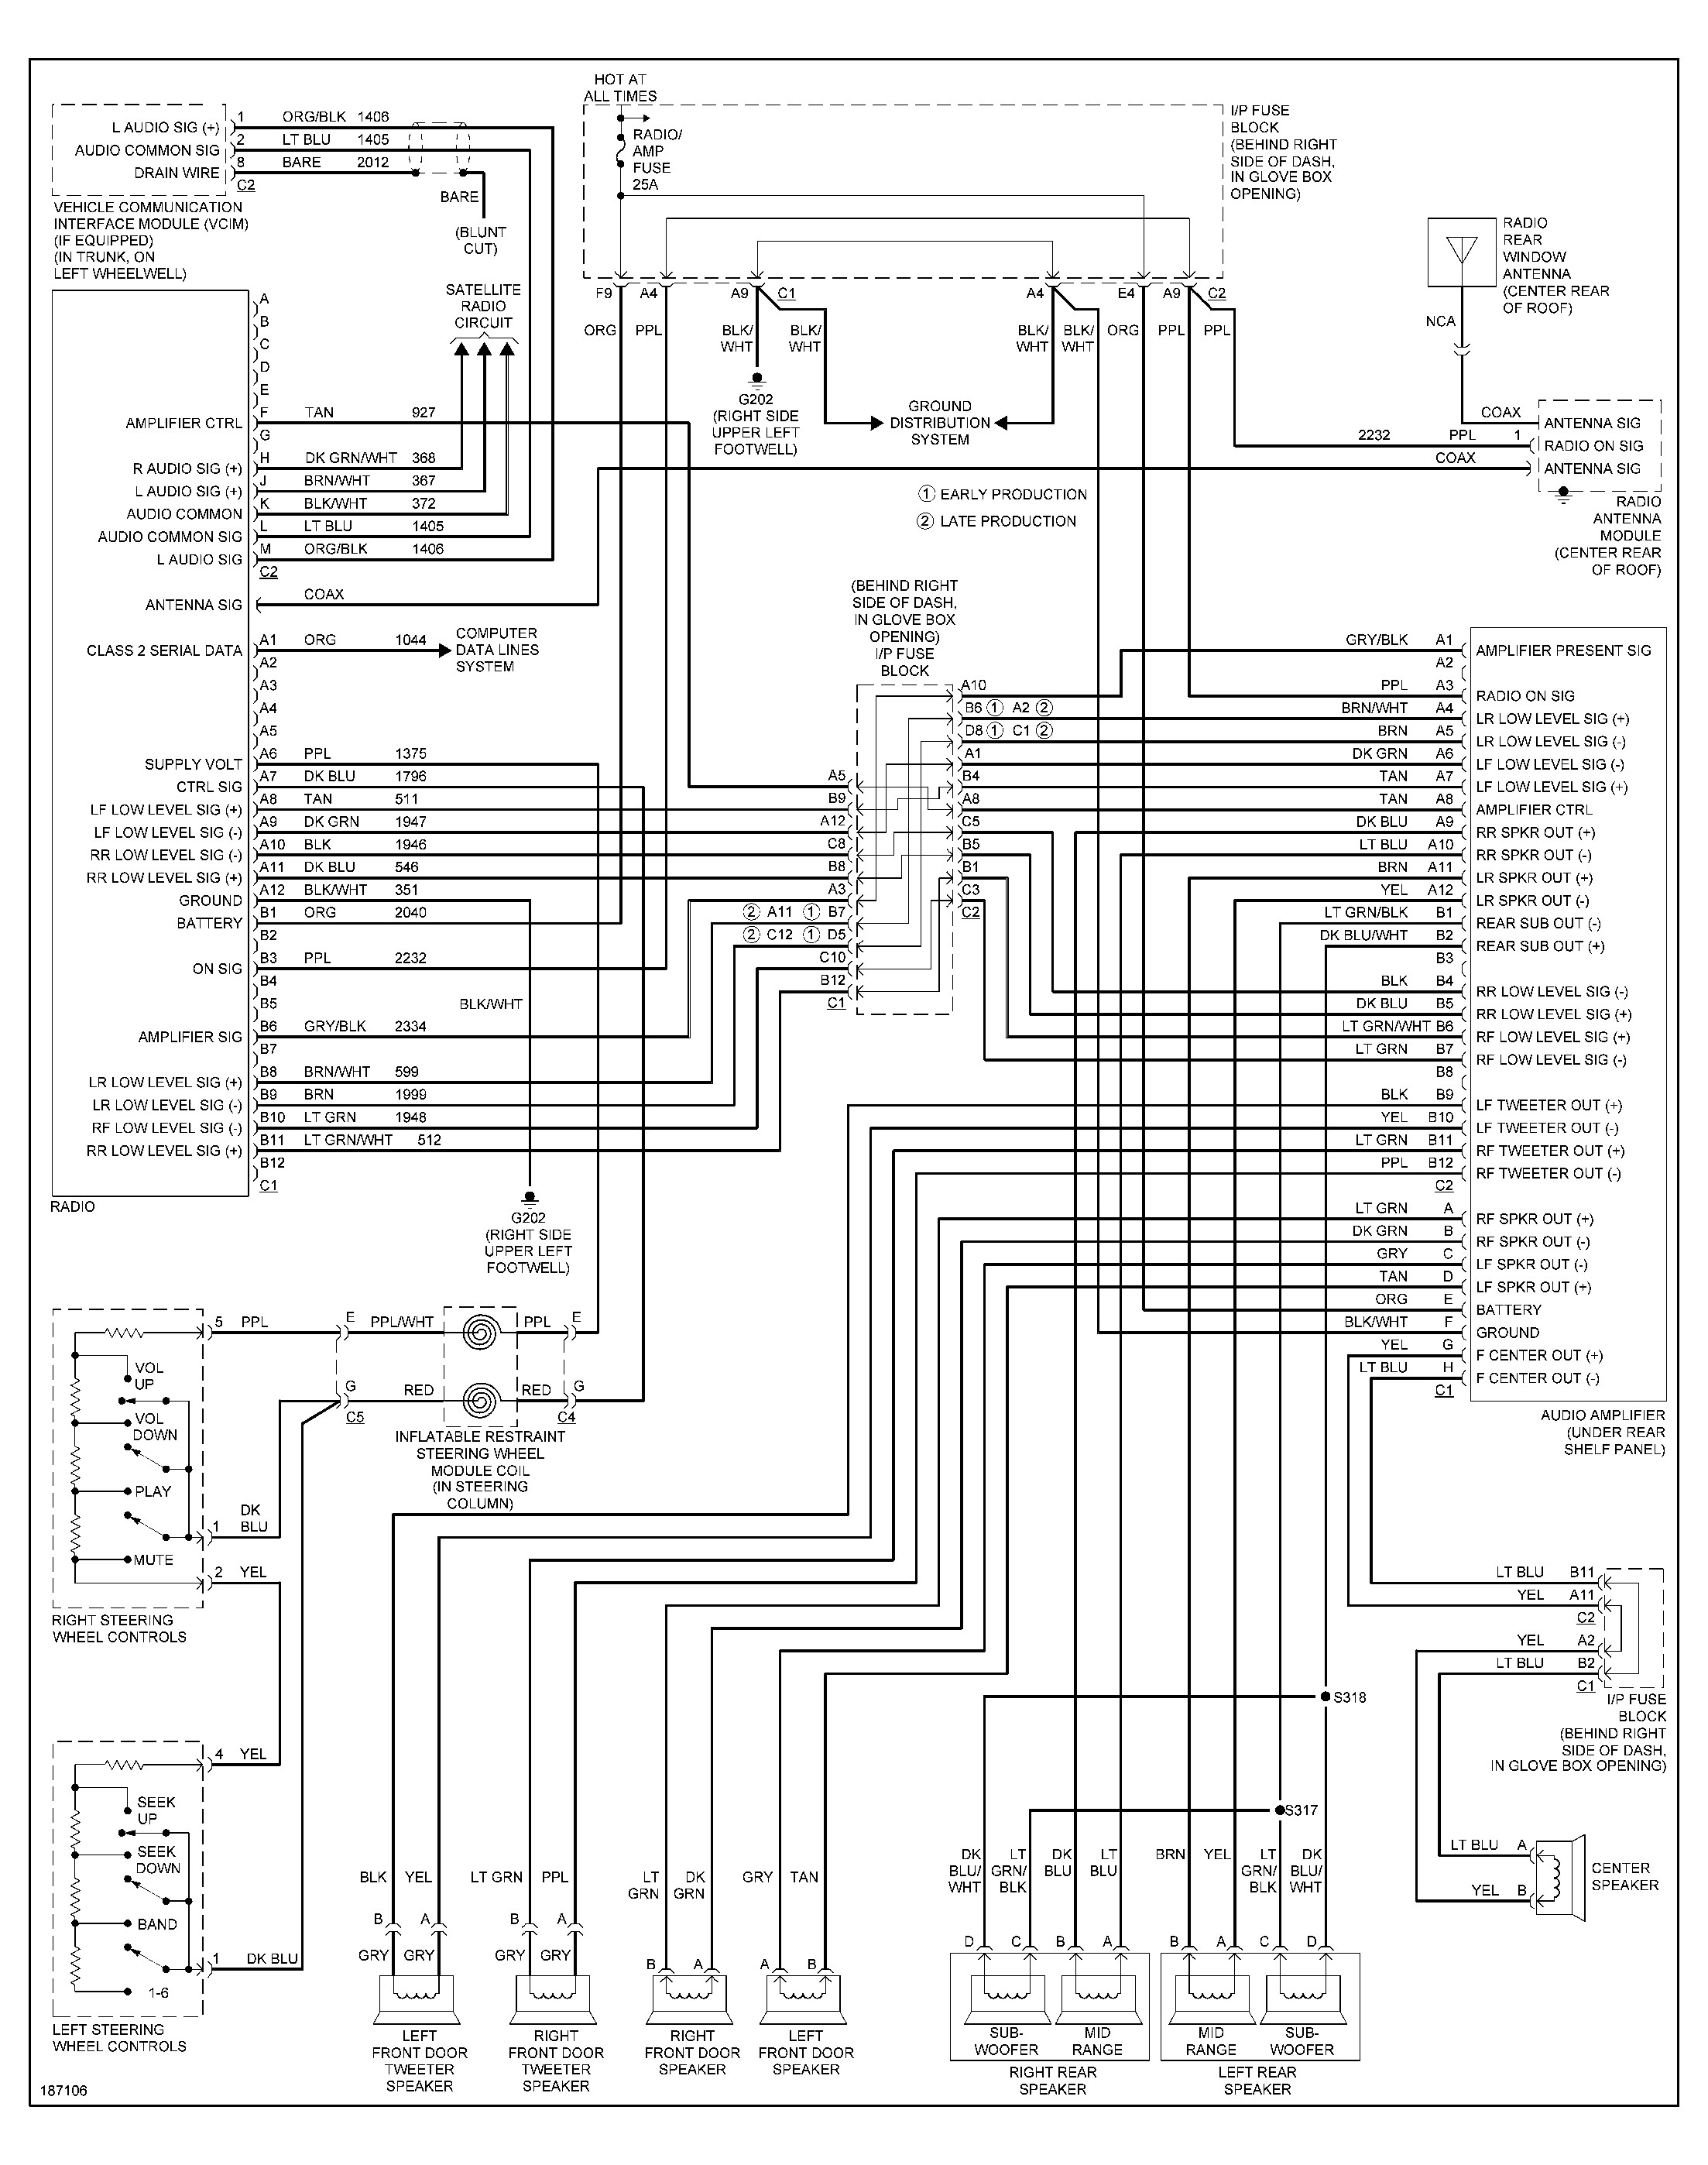 Wiring Diagram For Pontiac Grand Prix Radio